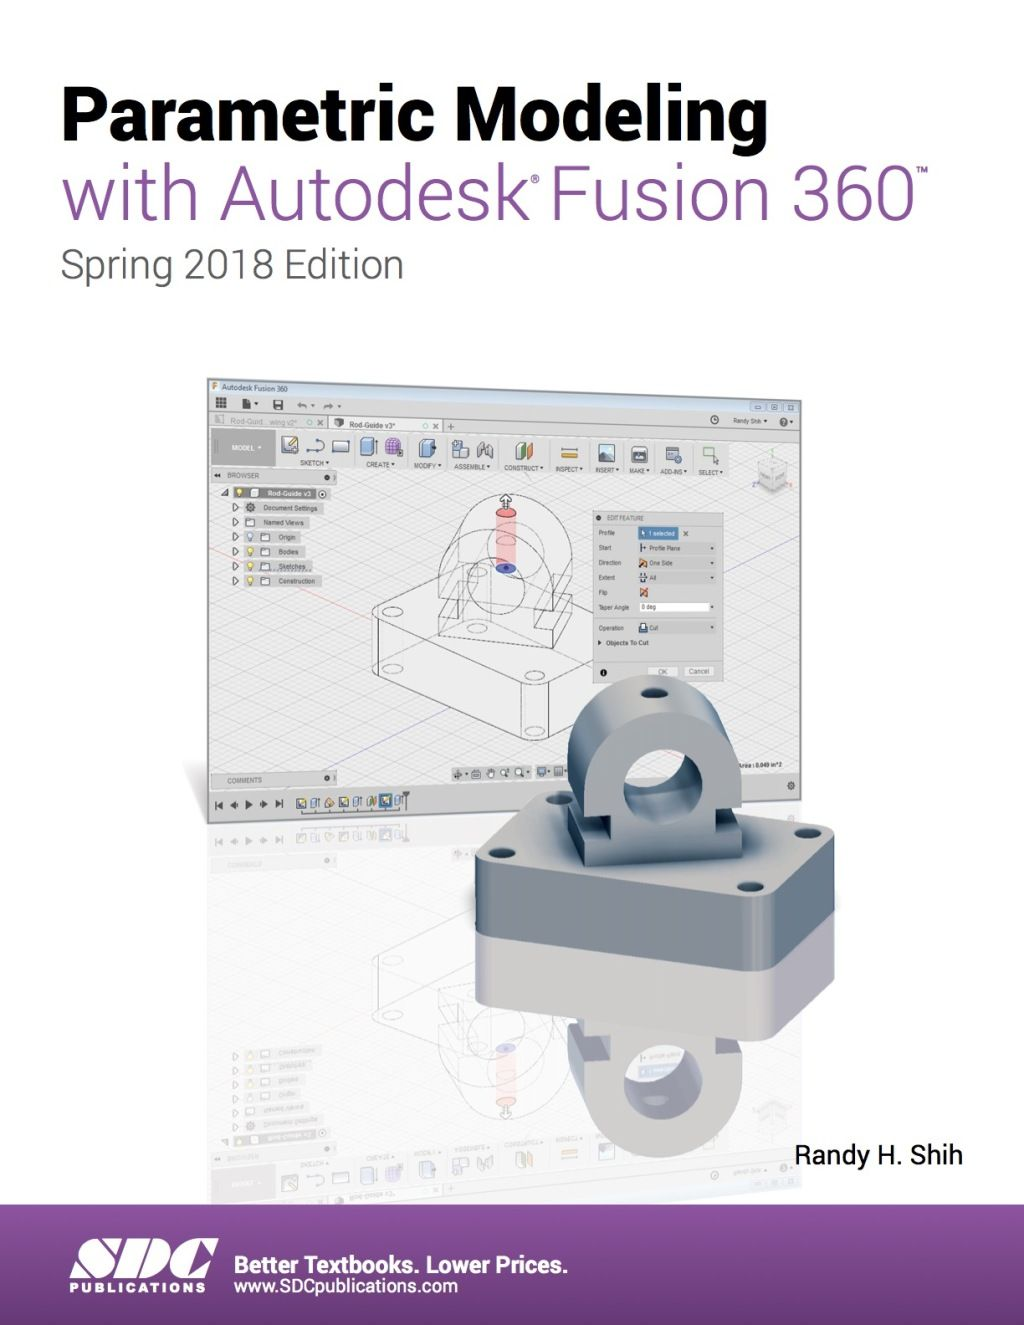 Parametric Modeling with Autodesk Fusion 360 (eBook